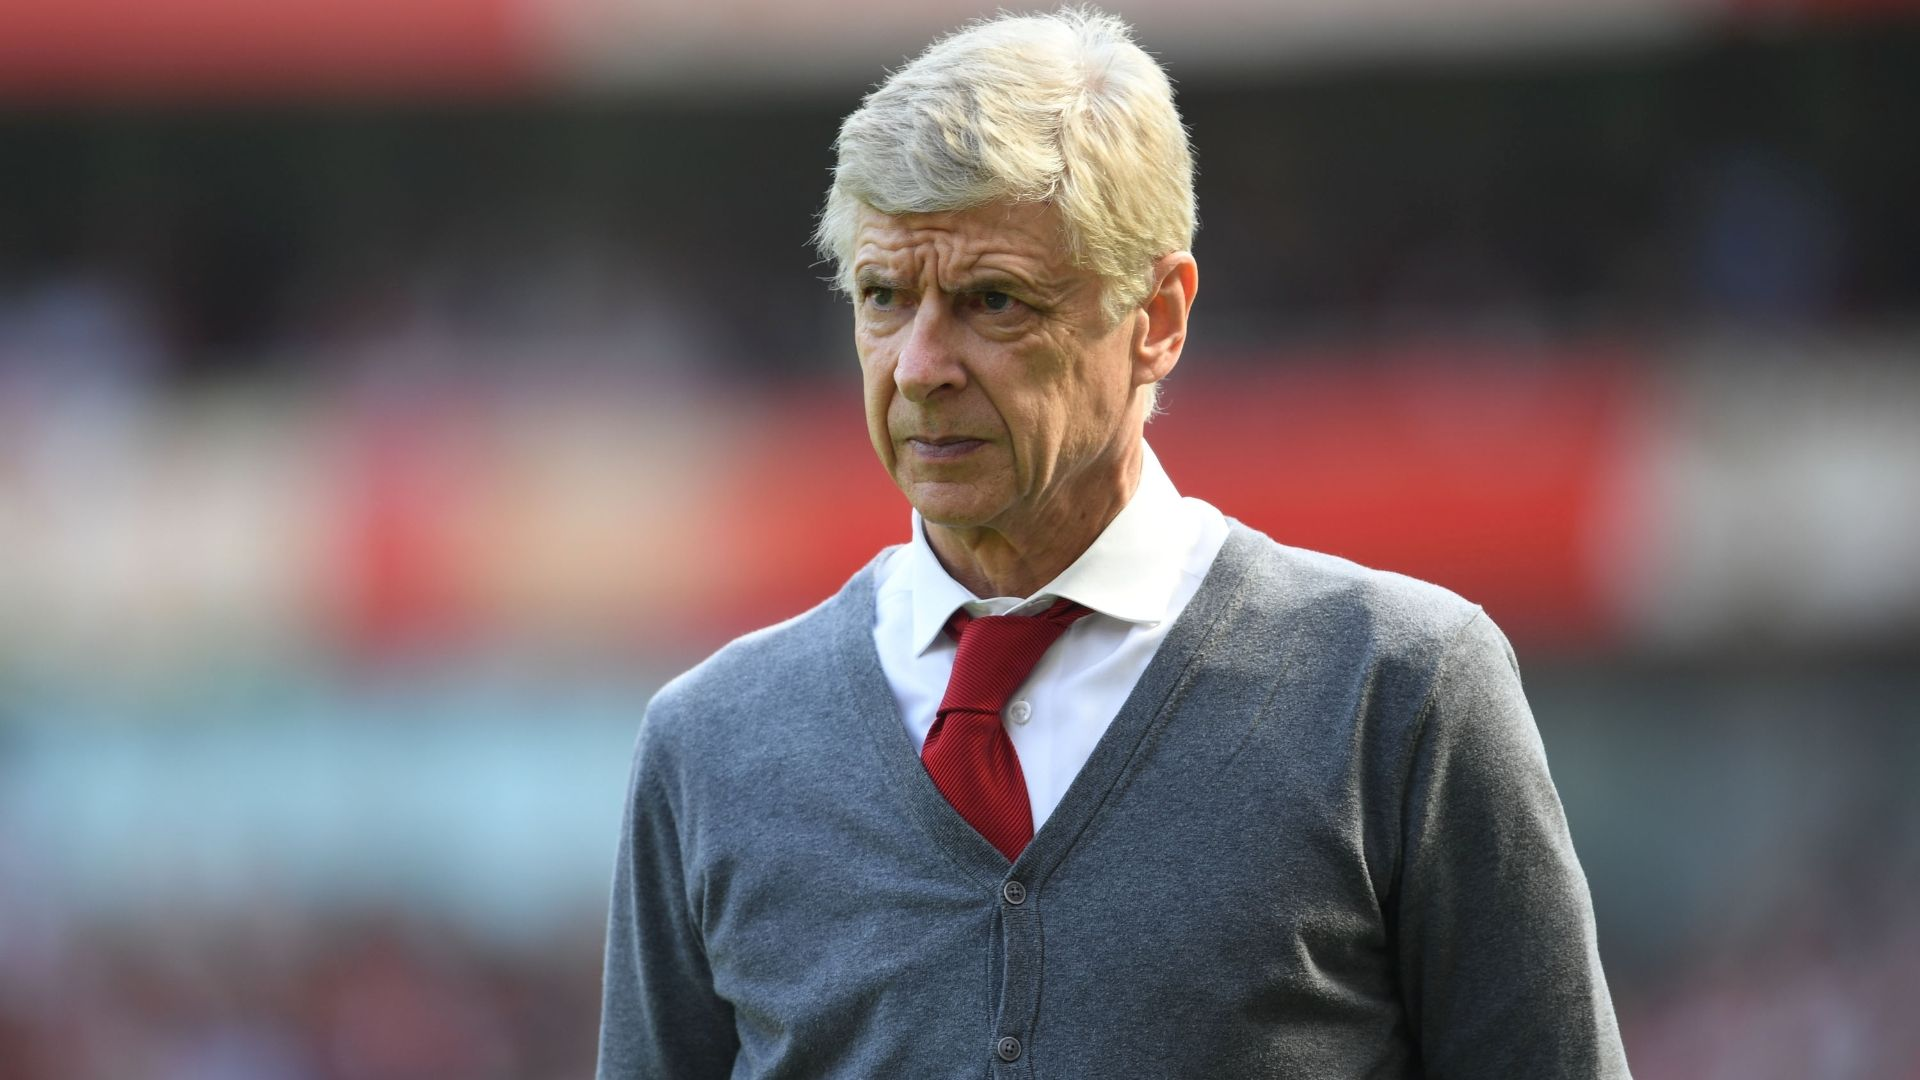 Wenger says target is 'to play in Europe again'